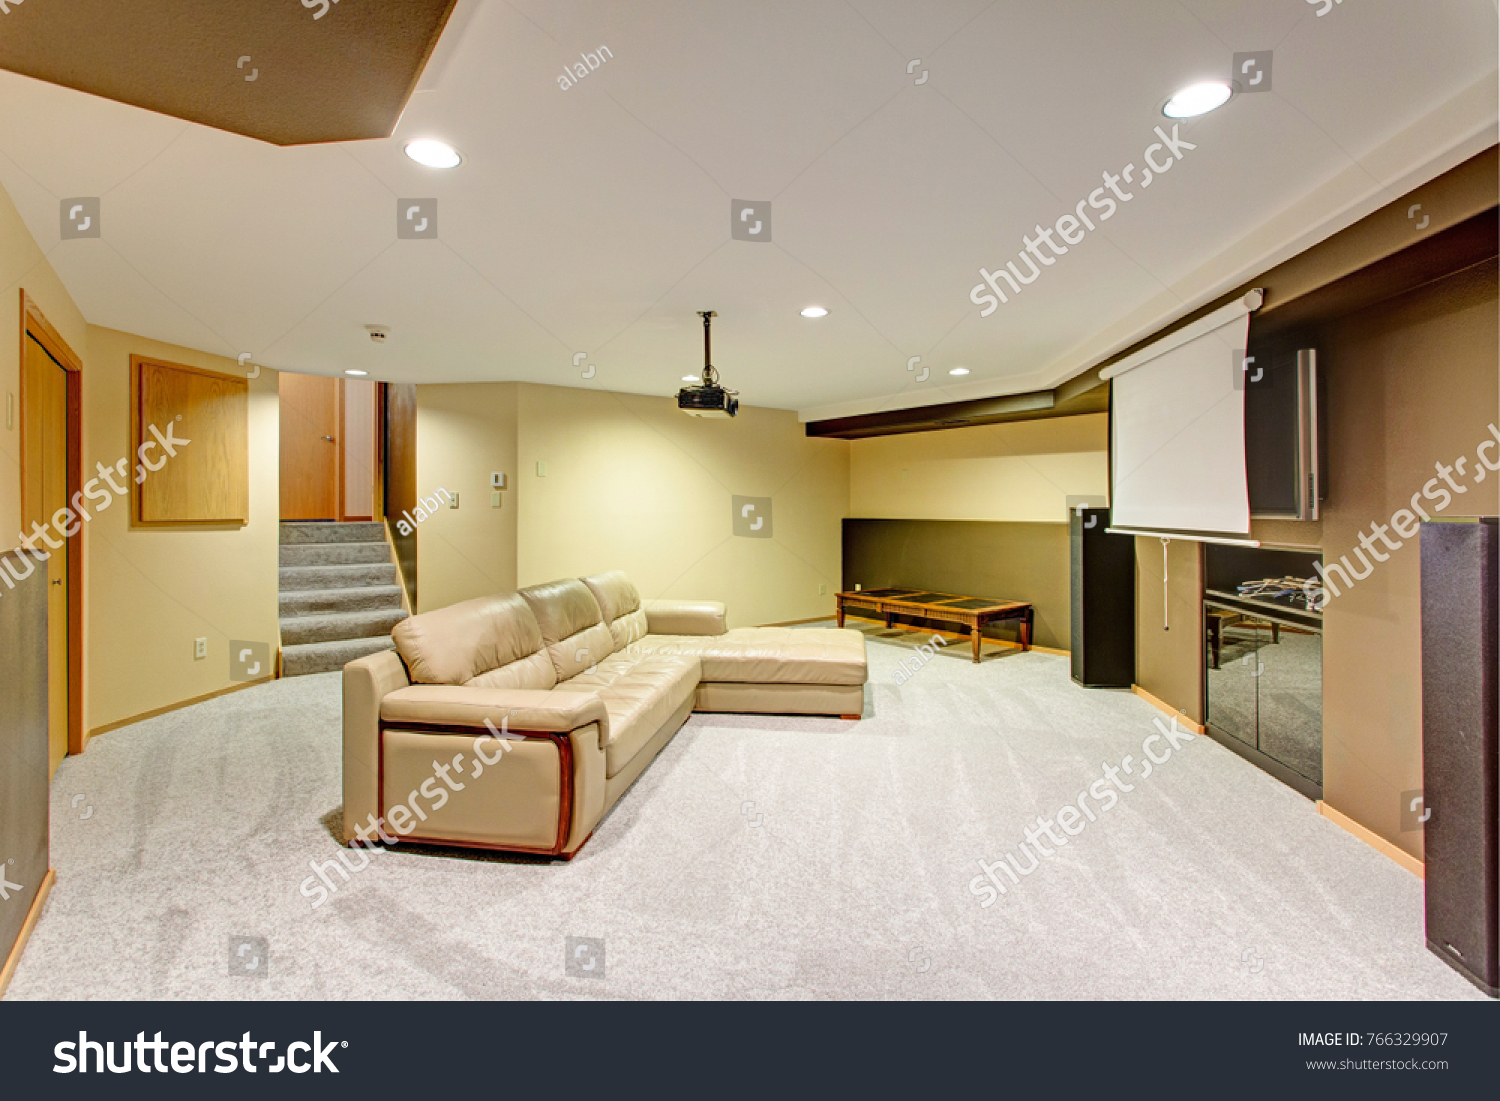 Beige Basement Movie Room Features Leather Buildings Landmarks Stock Image 766329907